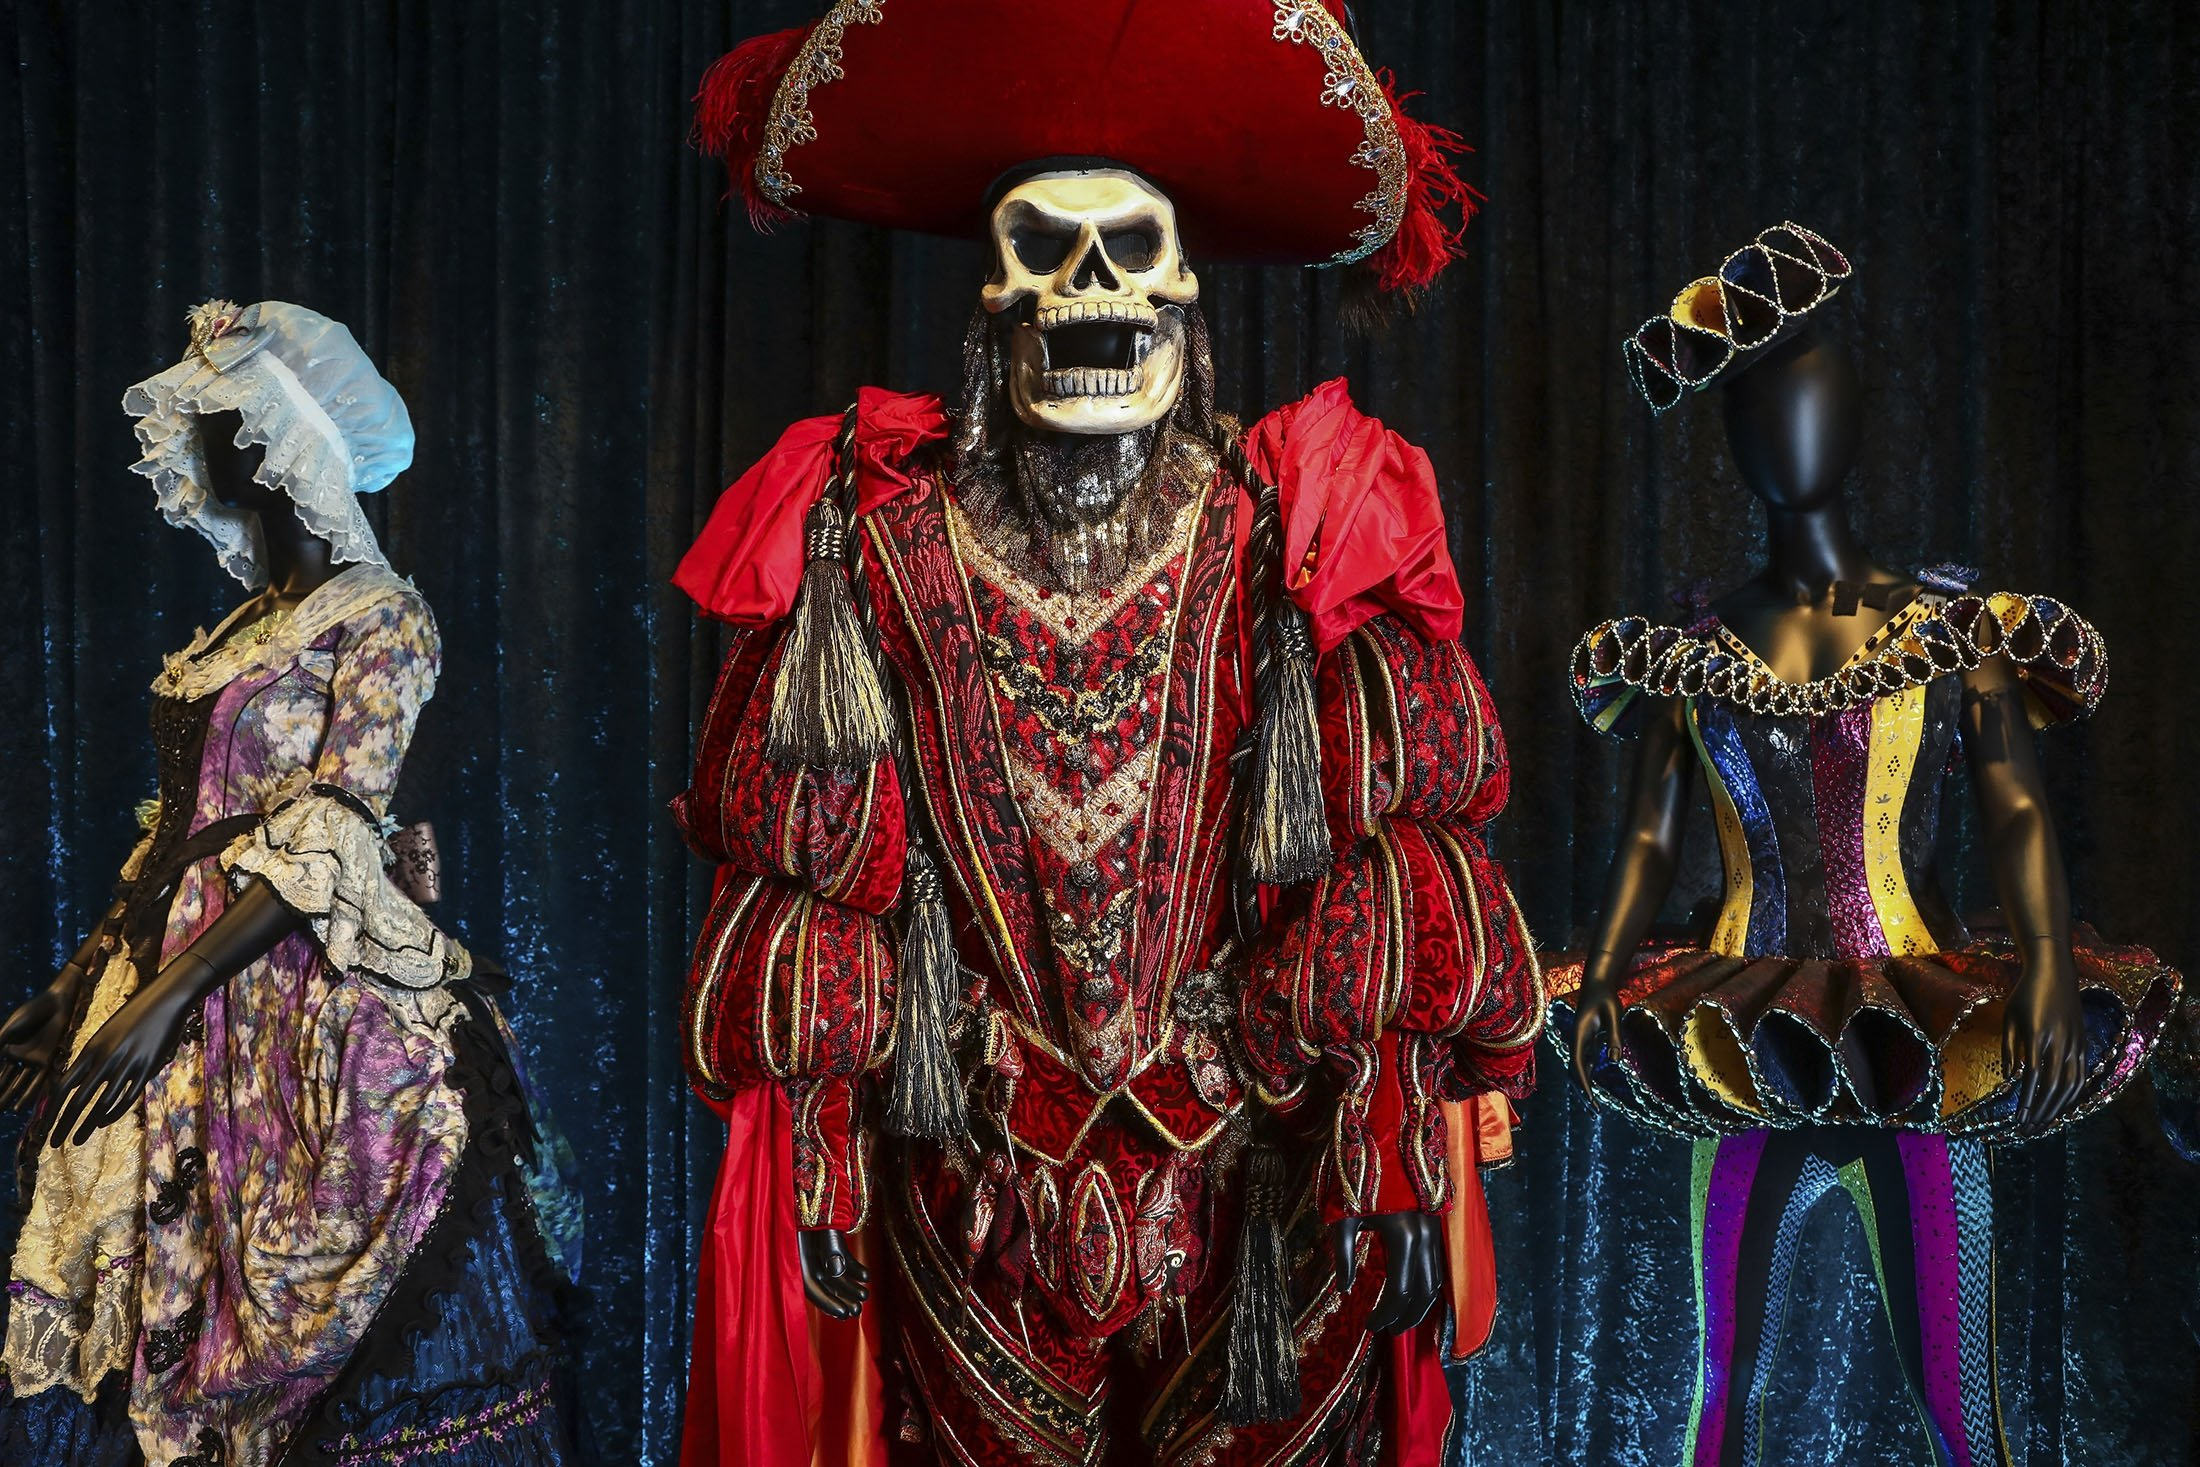 Costumes from the Broadway musical 'The Phantom of the Opera' are displayed at the 'Showstoppers! Spectacular Costumes from Stage & Screen' exhibit in Times Square, New York, U.S., Aug. 2, 2021. (AP Photo)